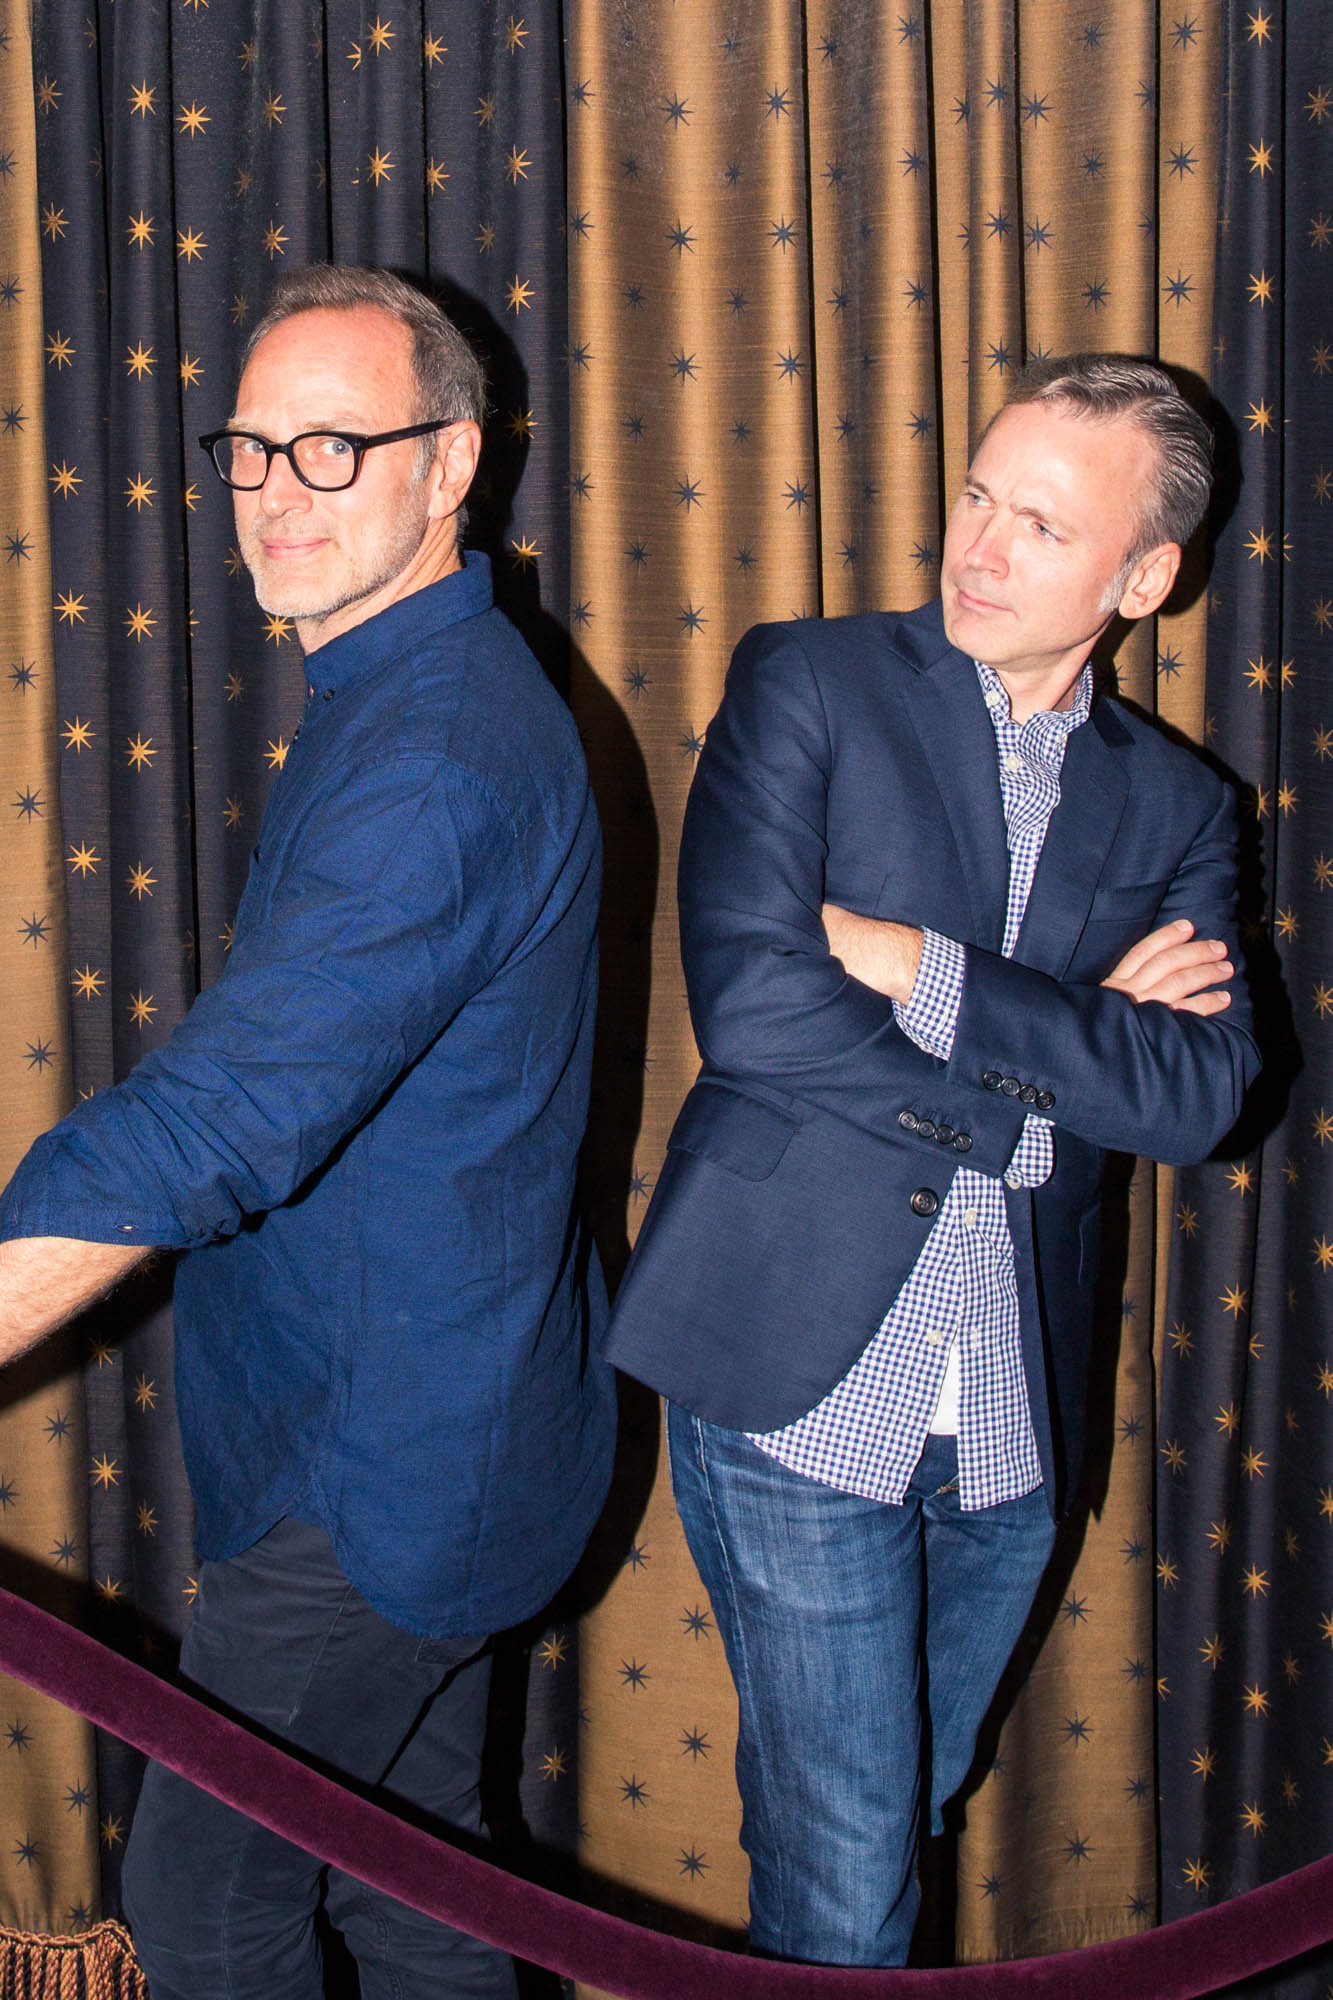 Inside The Snl Costume Closet With Tim Broecker And Eric Justian Coveteur